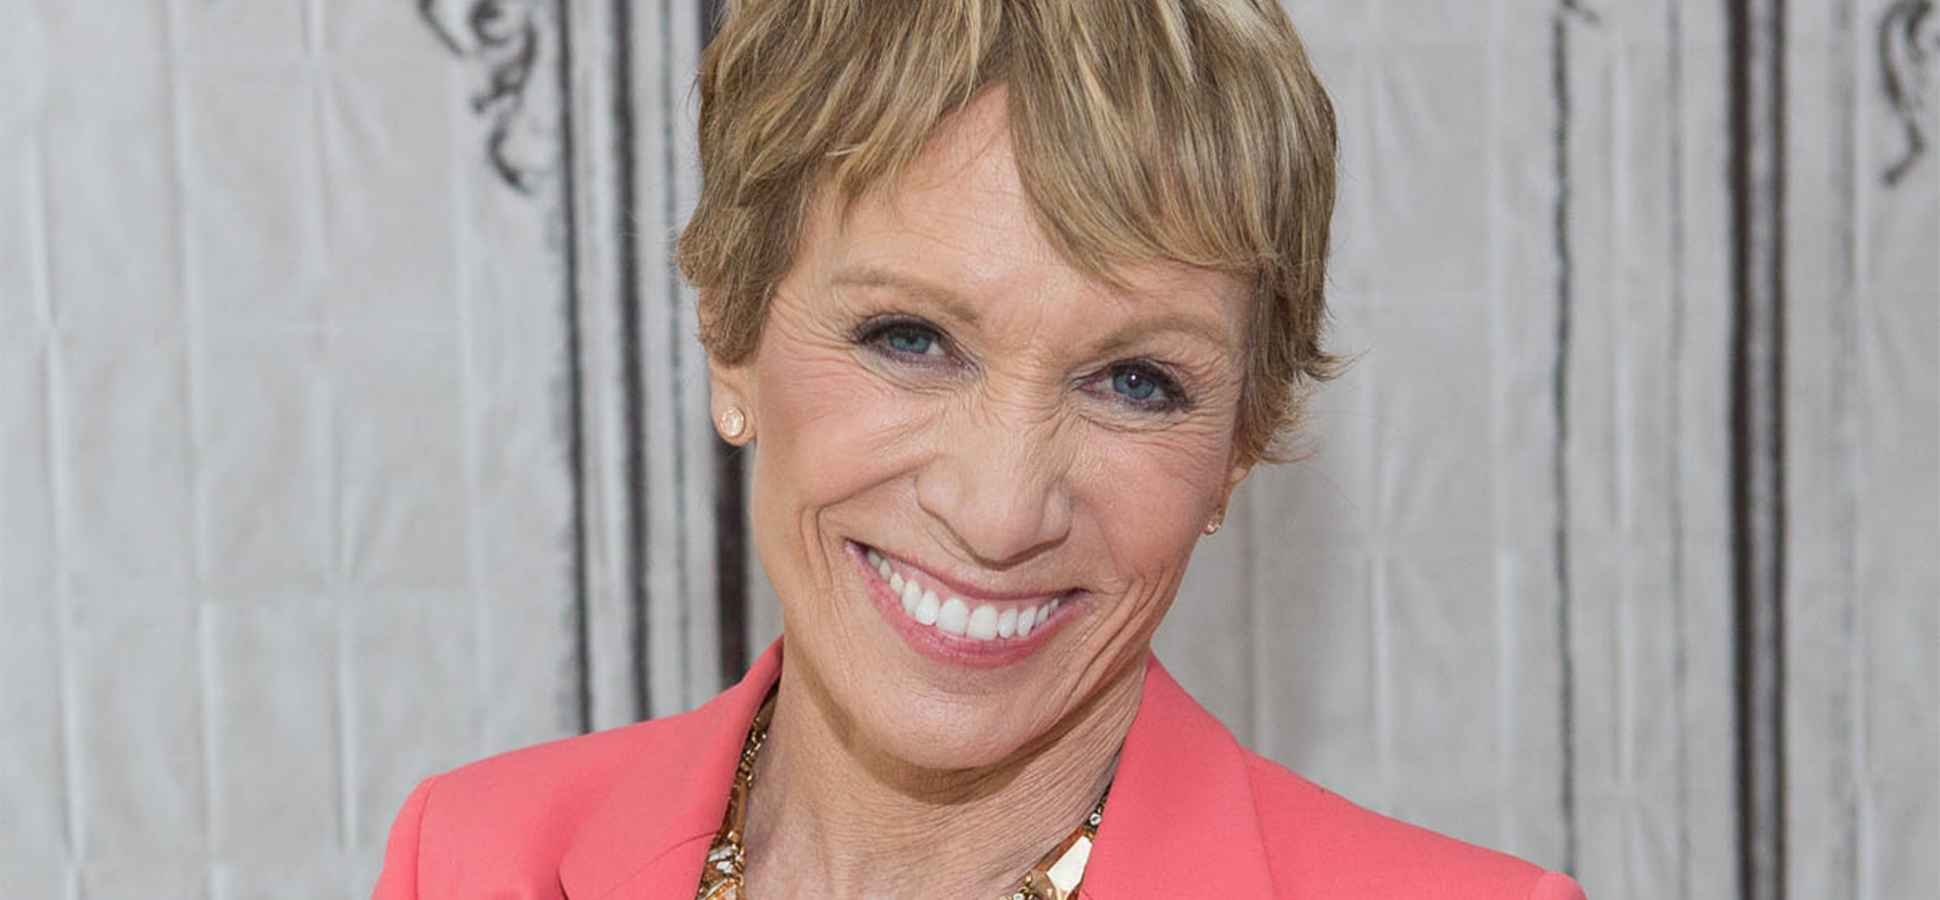 barbara corcoran swears by 1 interview question to weed out